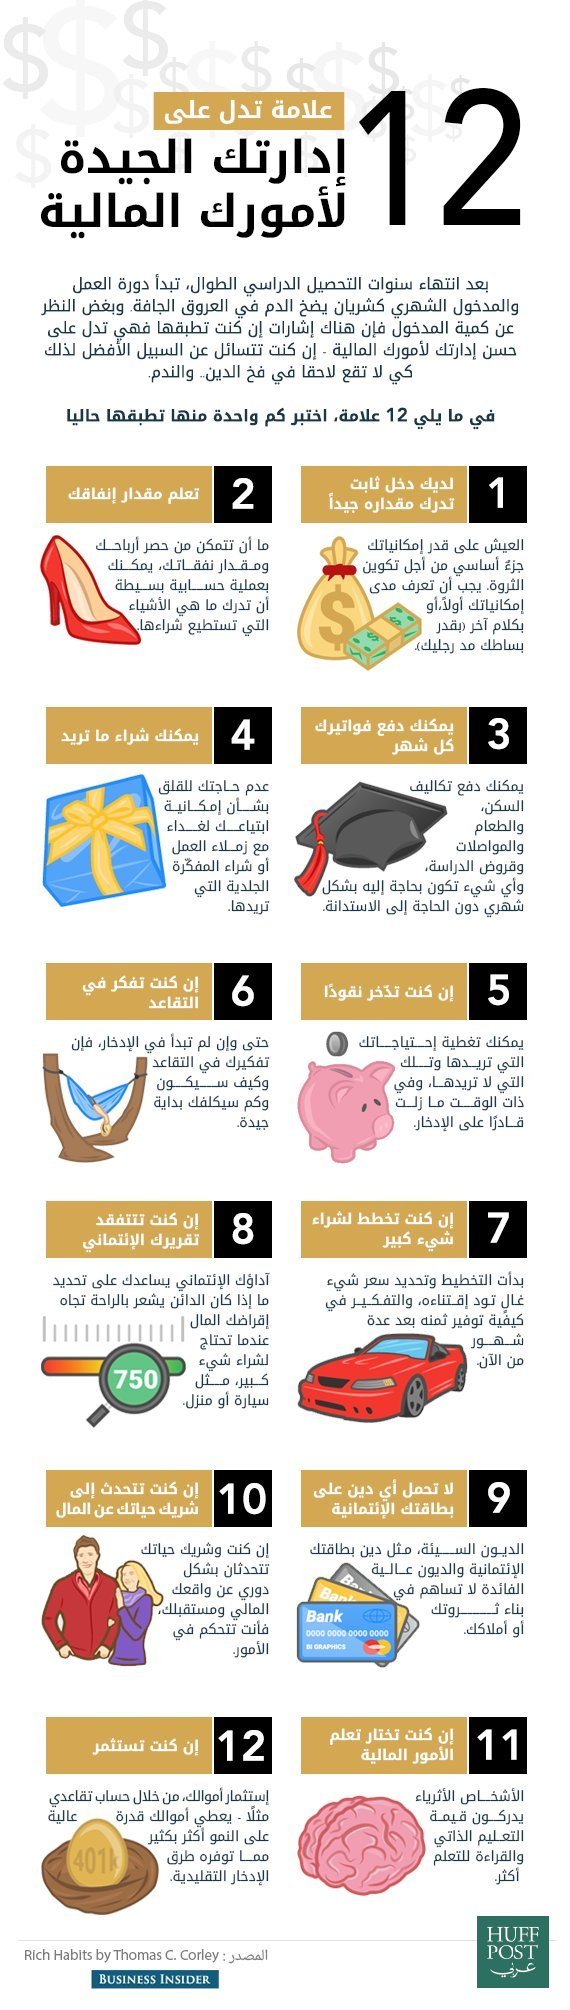 12 ways money managment